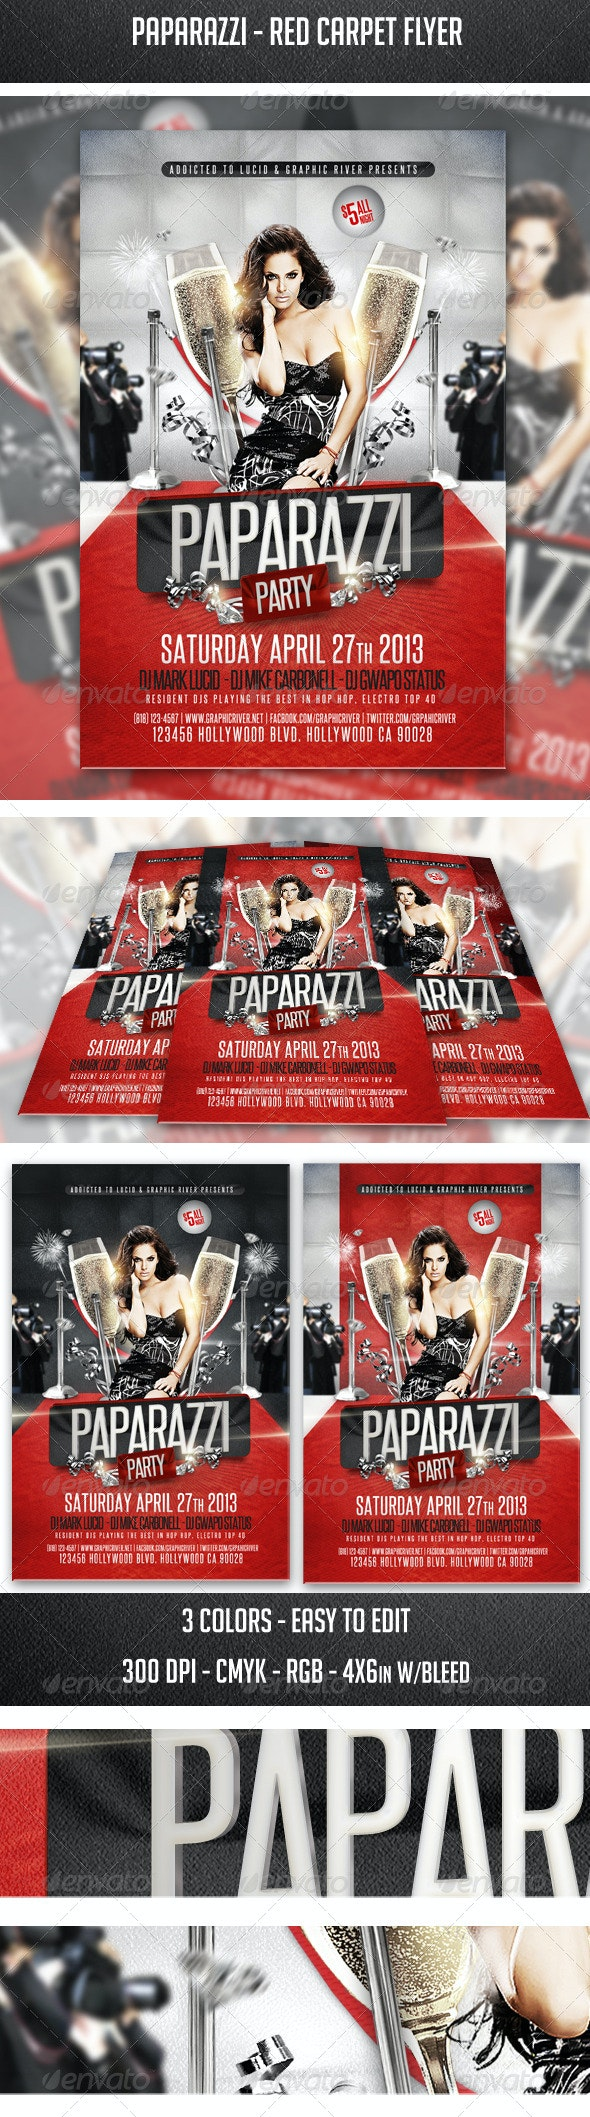 Paparazzi - Red Carpet Flyer - Clubs & Parties Events